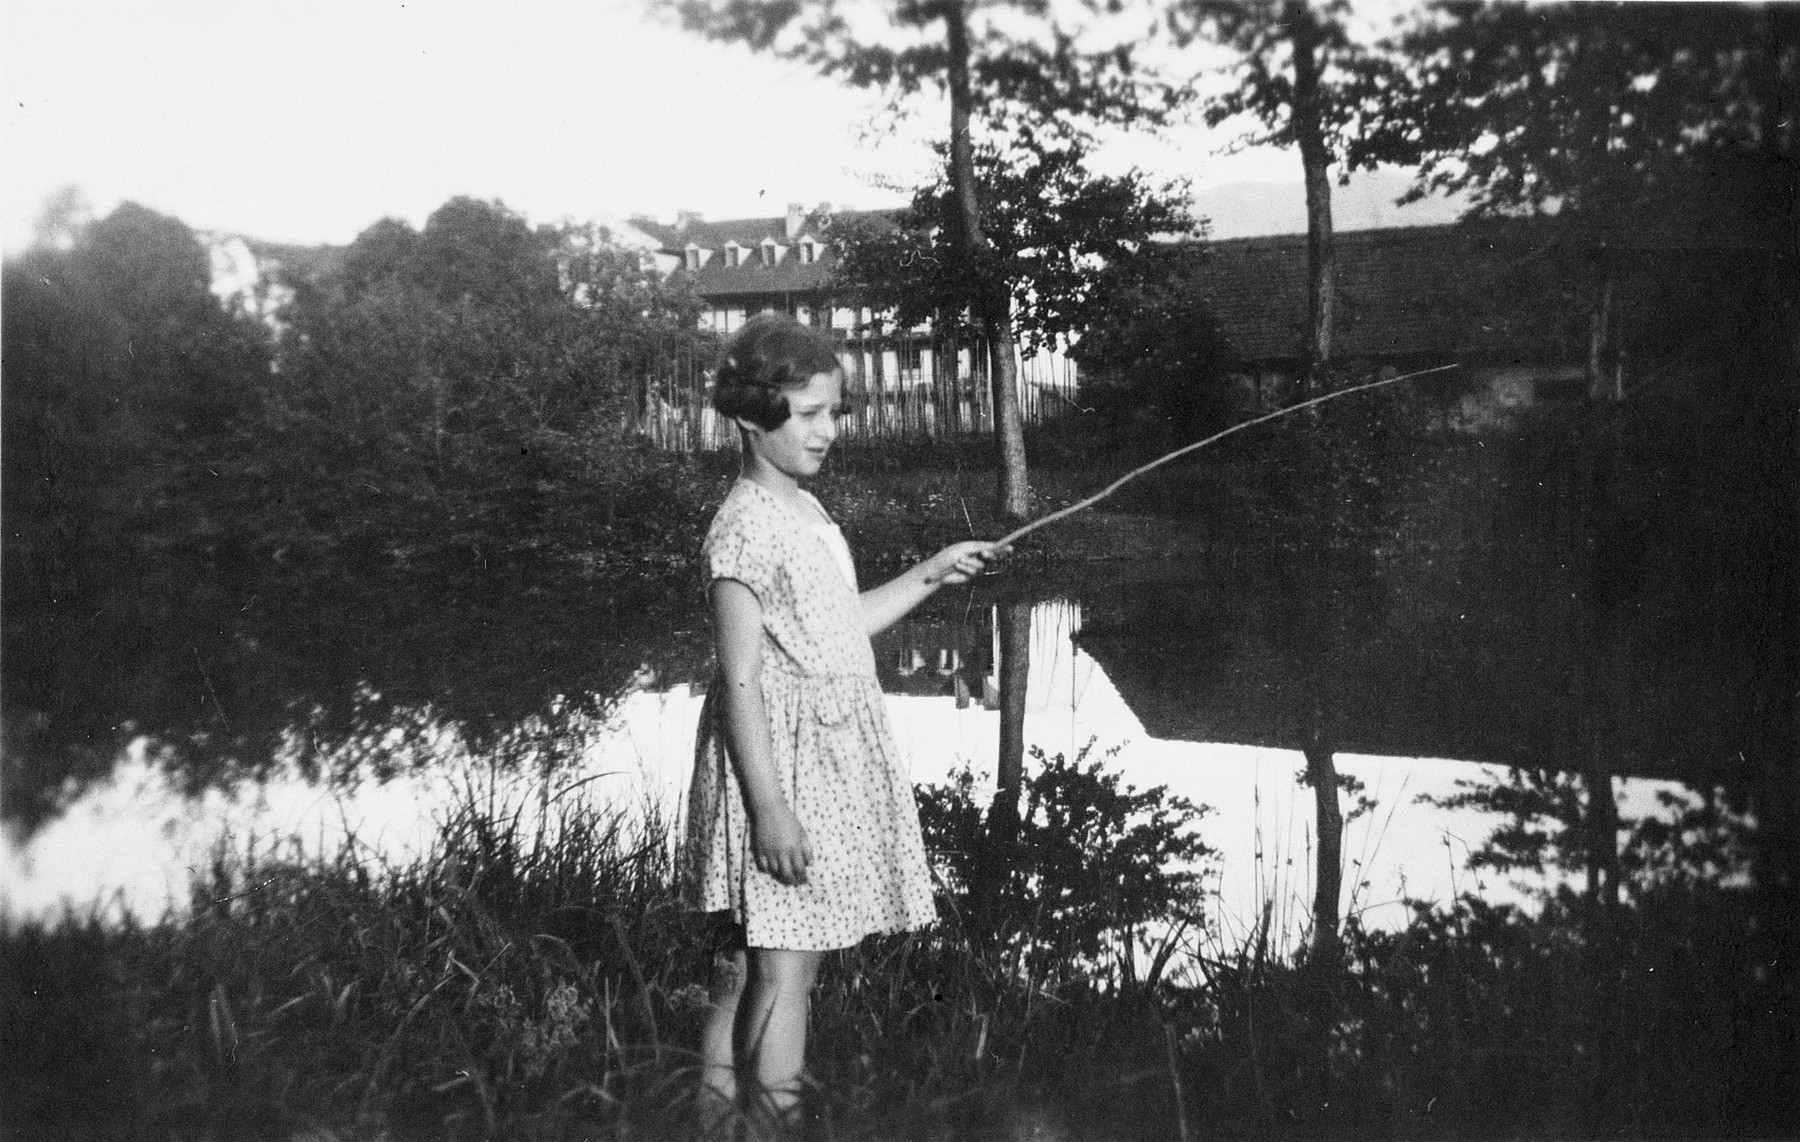 Edith Goldapper goes fishing while on vacation in Eibiswald.